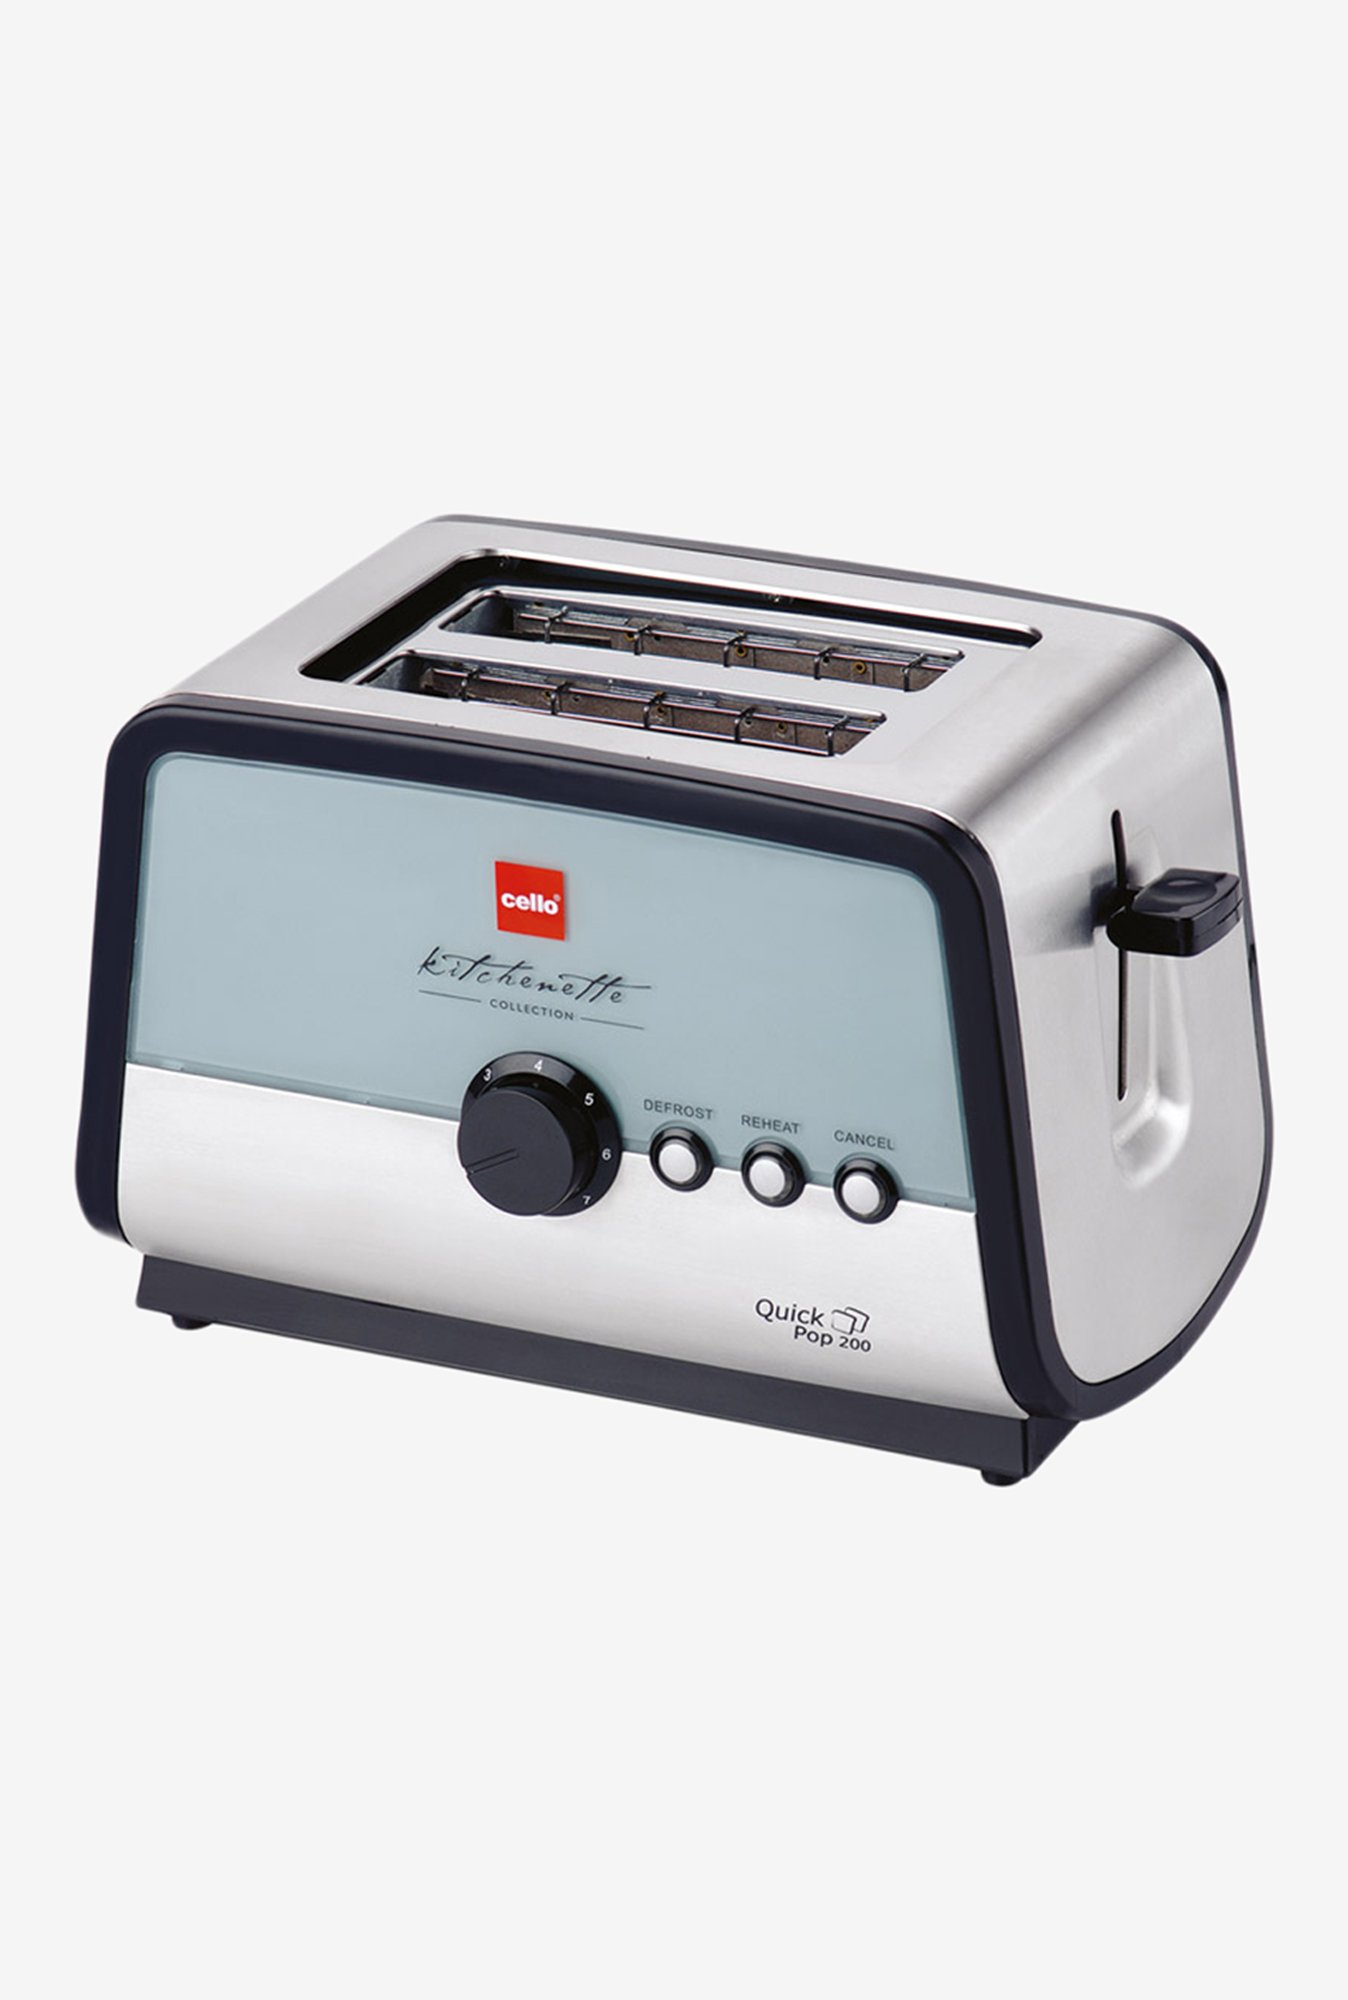 Cello Quick Pop 200 Toaster Silver